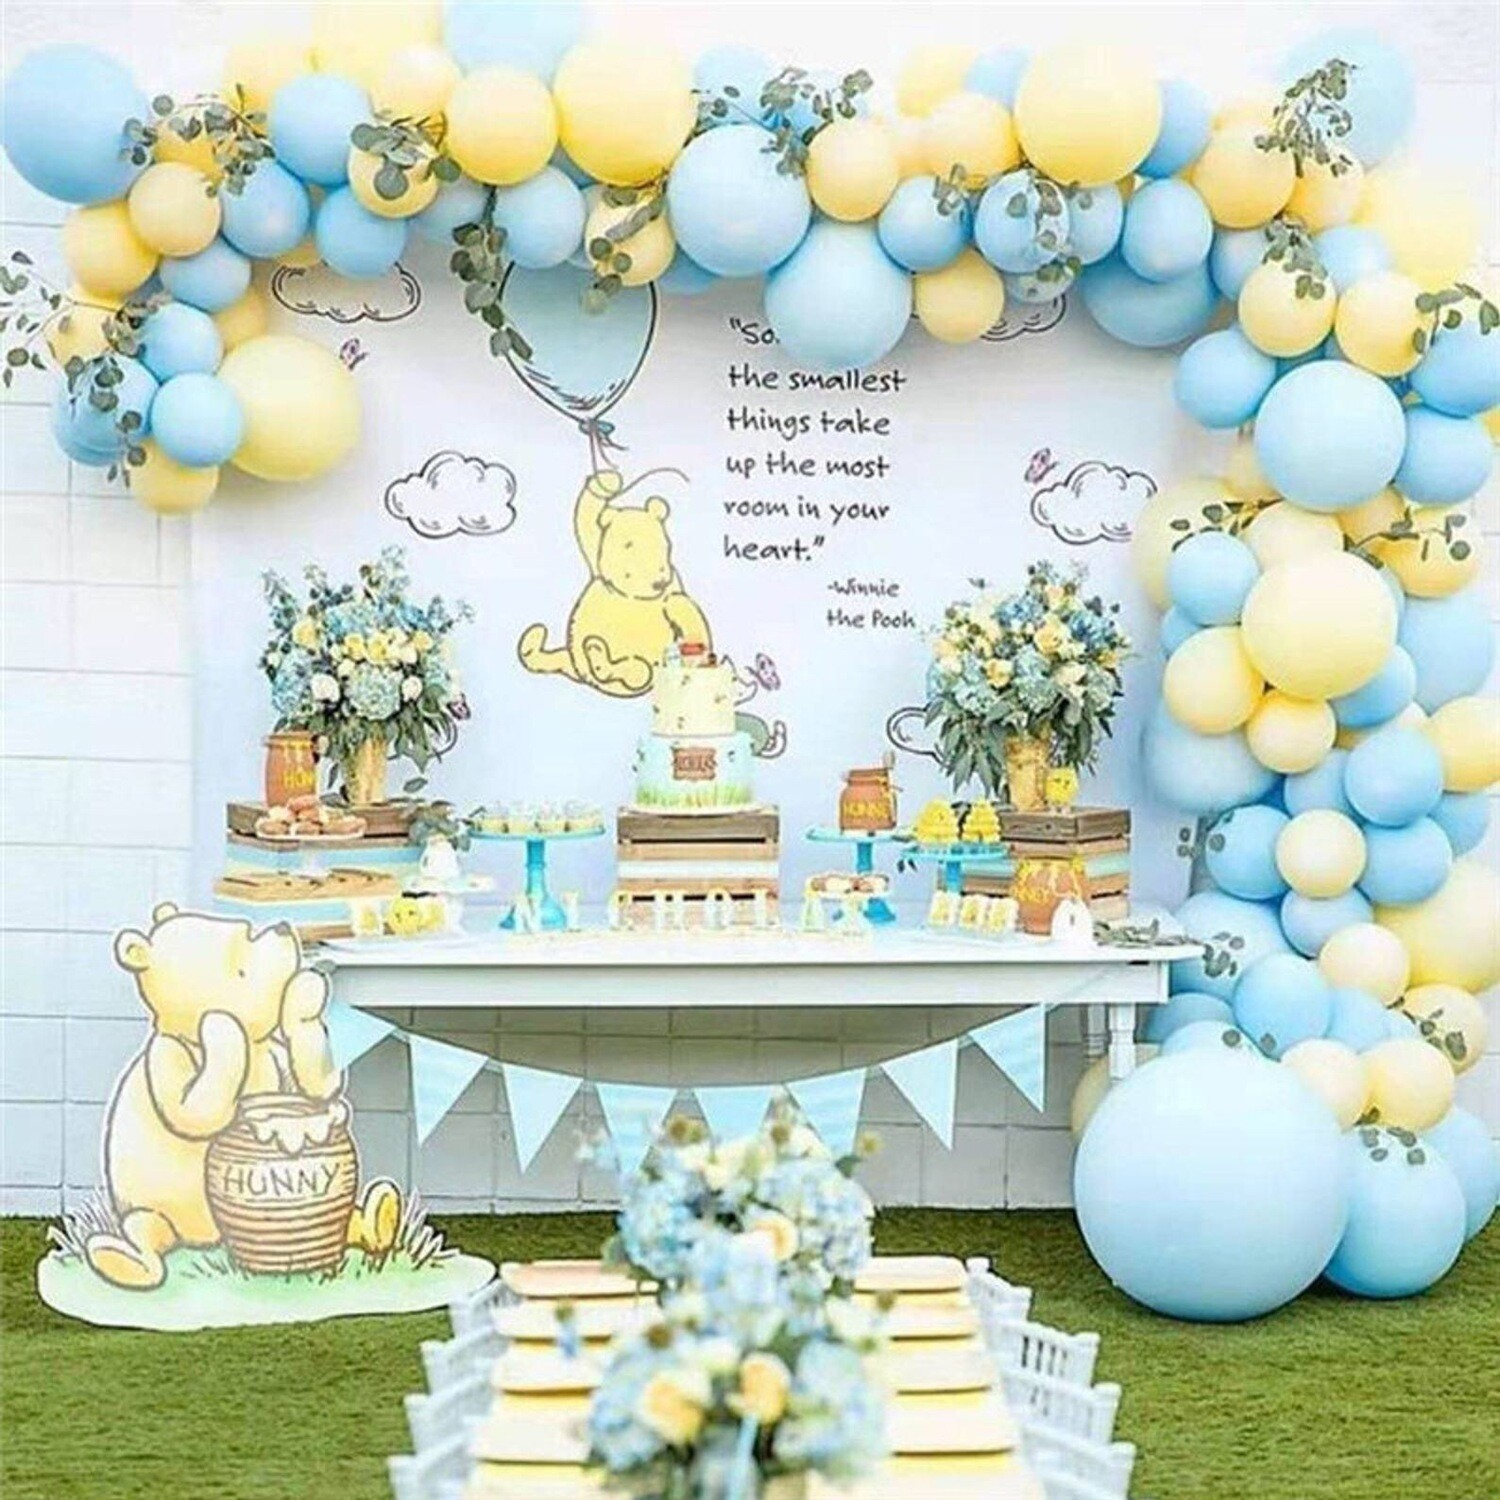 110pcs Pastel Macaron Blue Yellow Balloons Arch Kit Globos Birthday Party Decorations Kids Wedding Balloon Garland Party Supplies